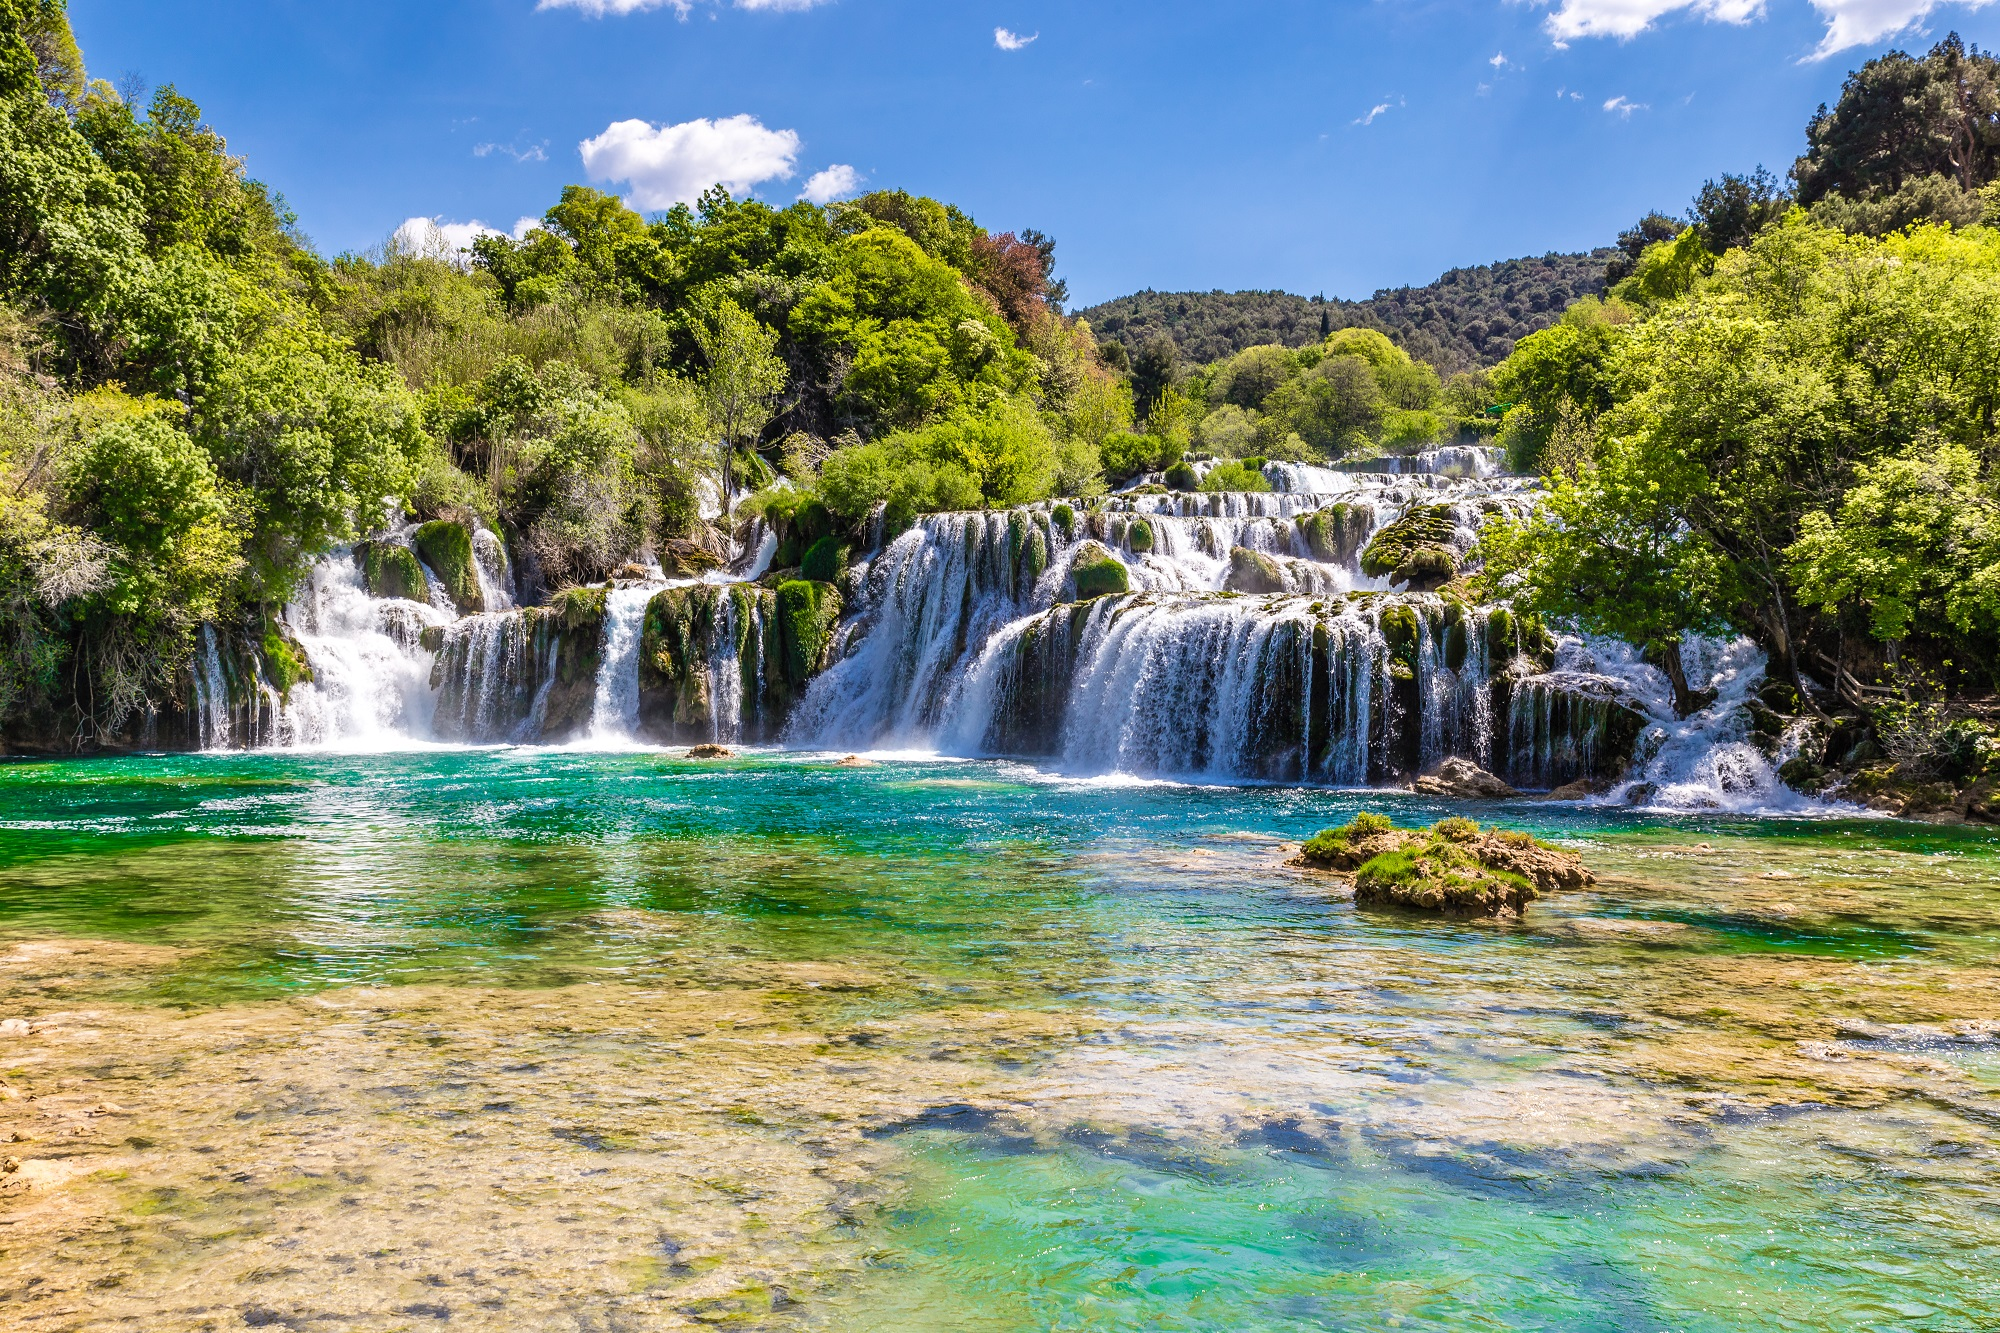 beautiful-skradinski-buk-waterfall-in-krka-national-park-dalmatia-croatia-europe_shutterstock_400464775